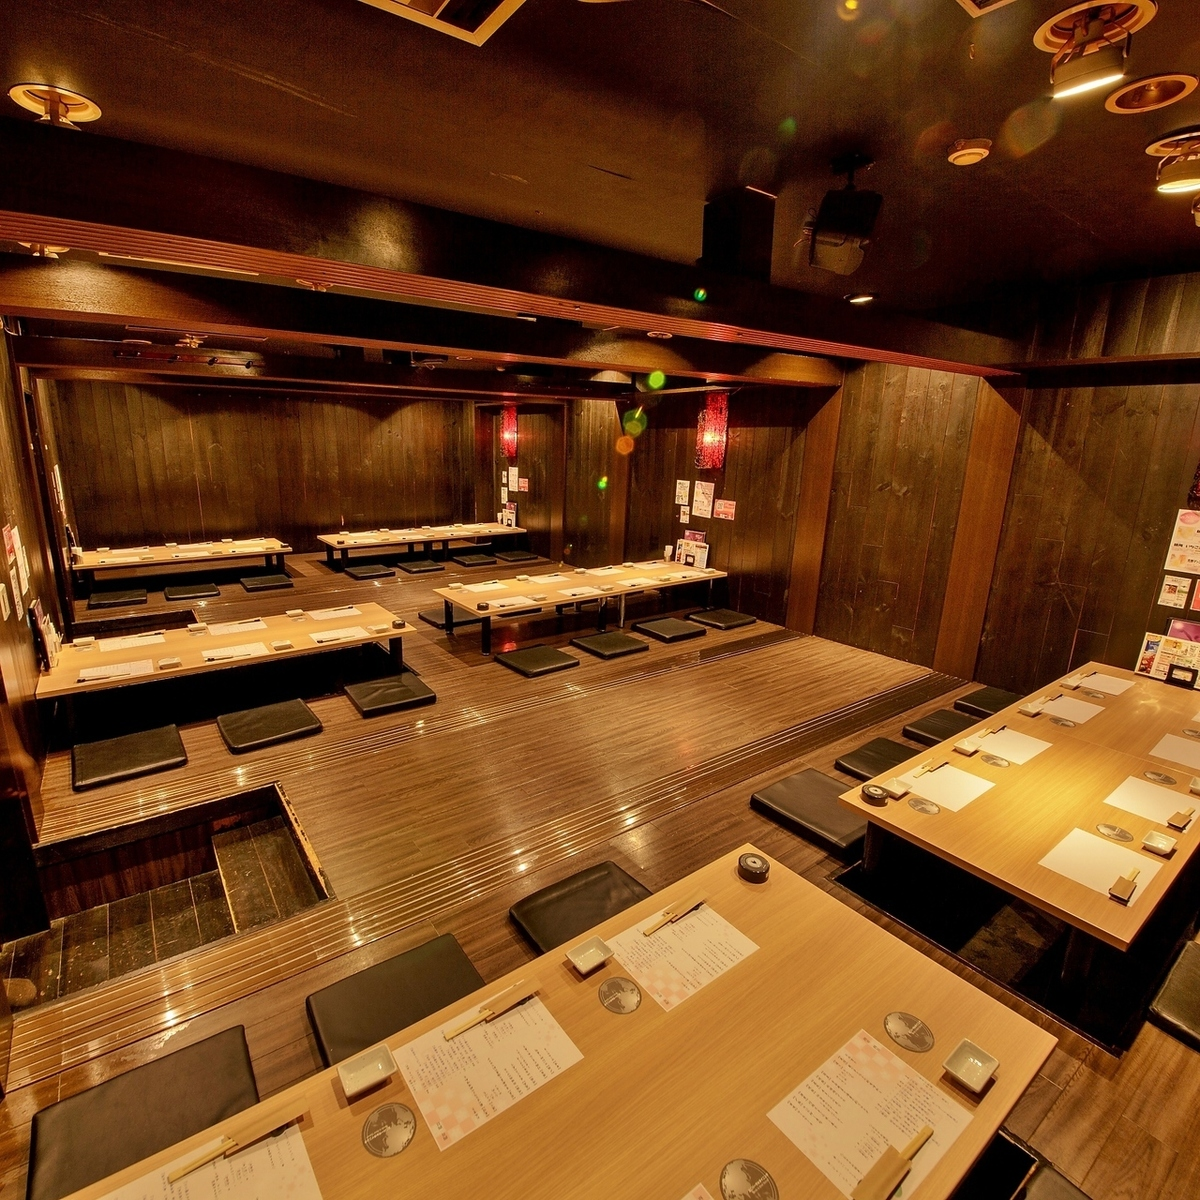 Digging corresponding to up to 60 guests Tatsuro's room